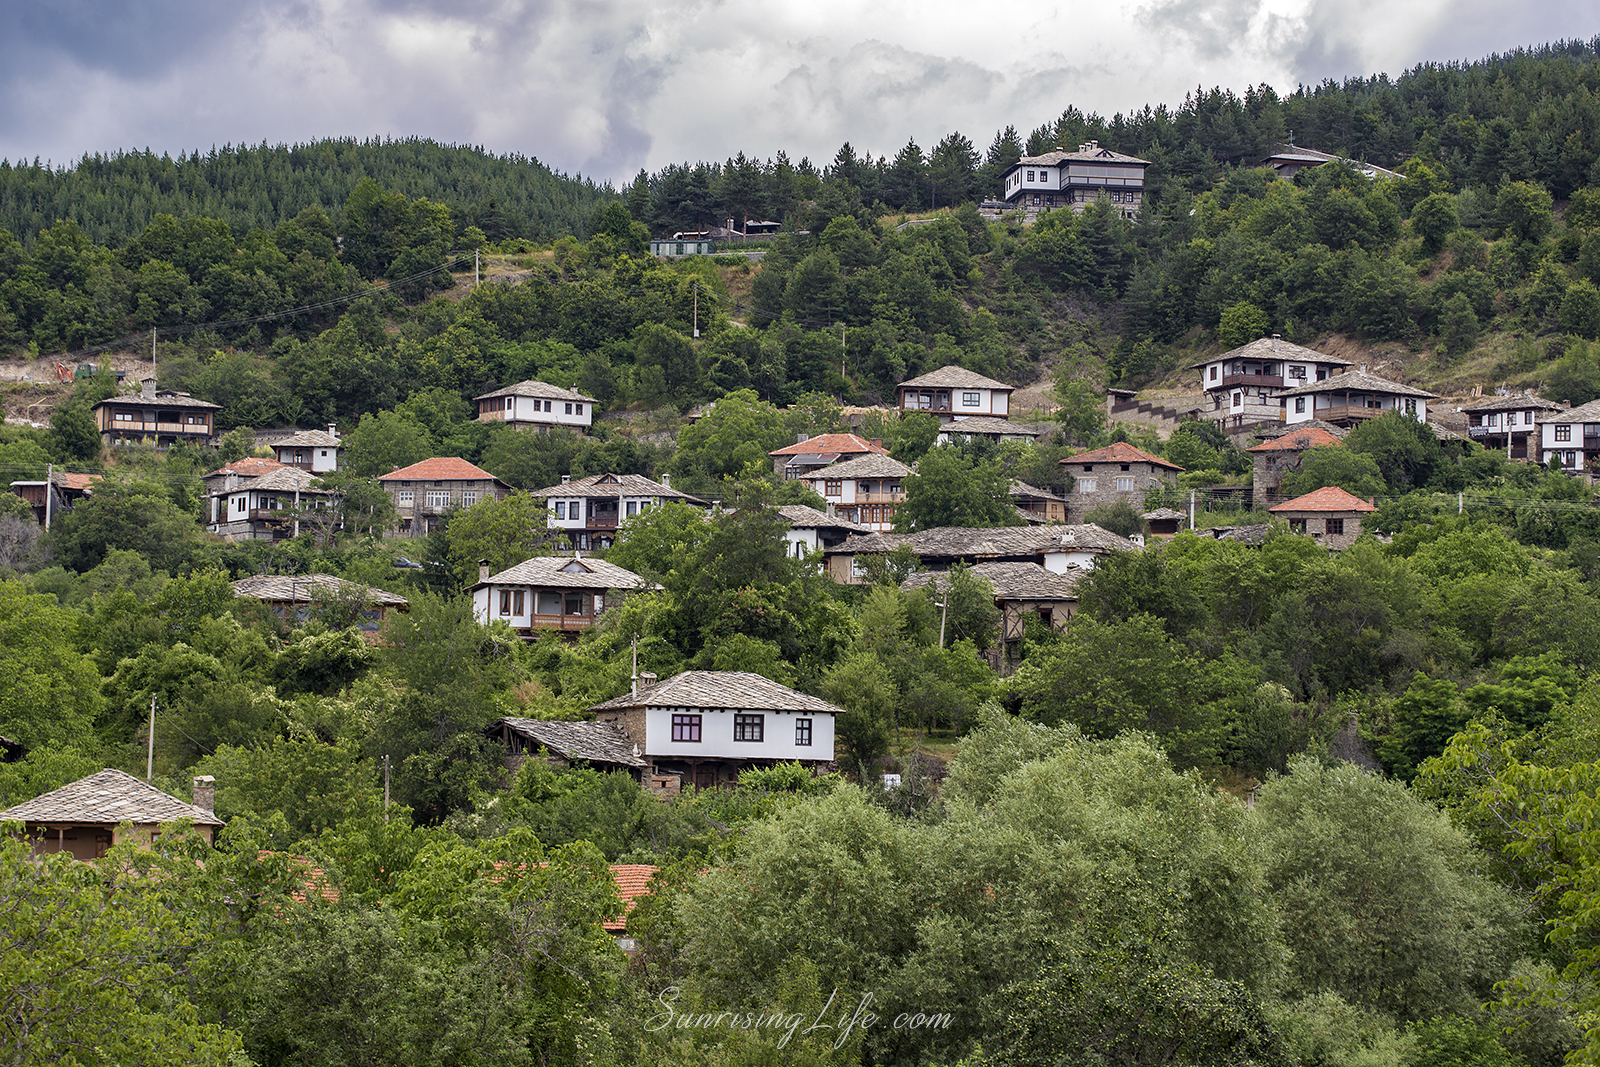 Small houses of Leshten village